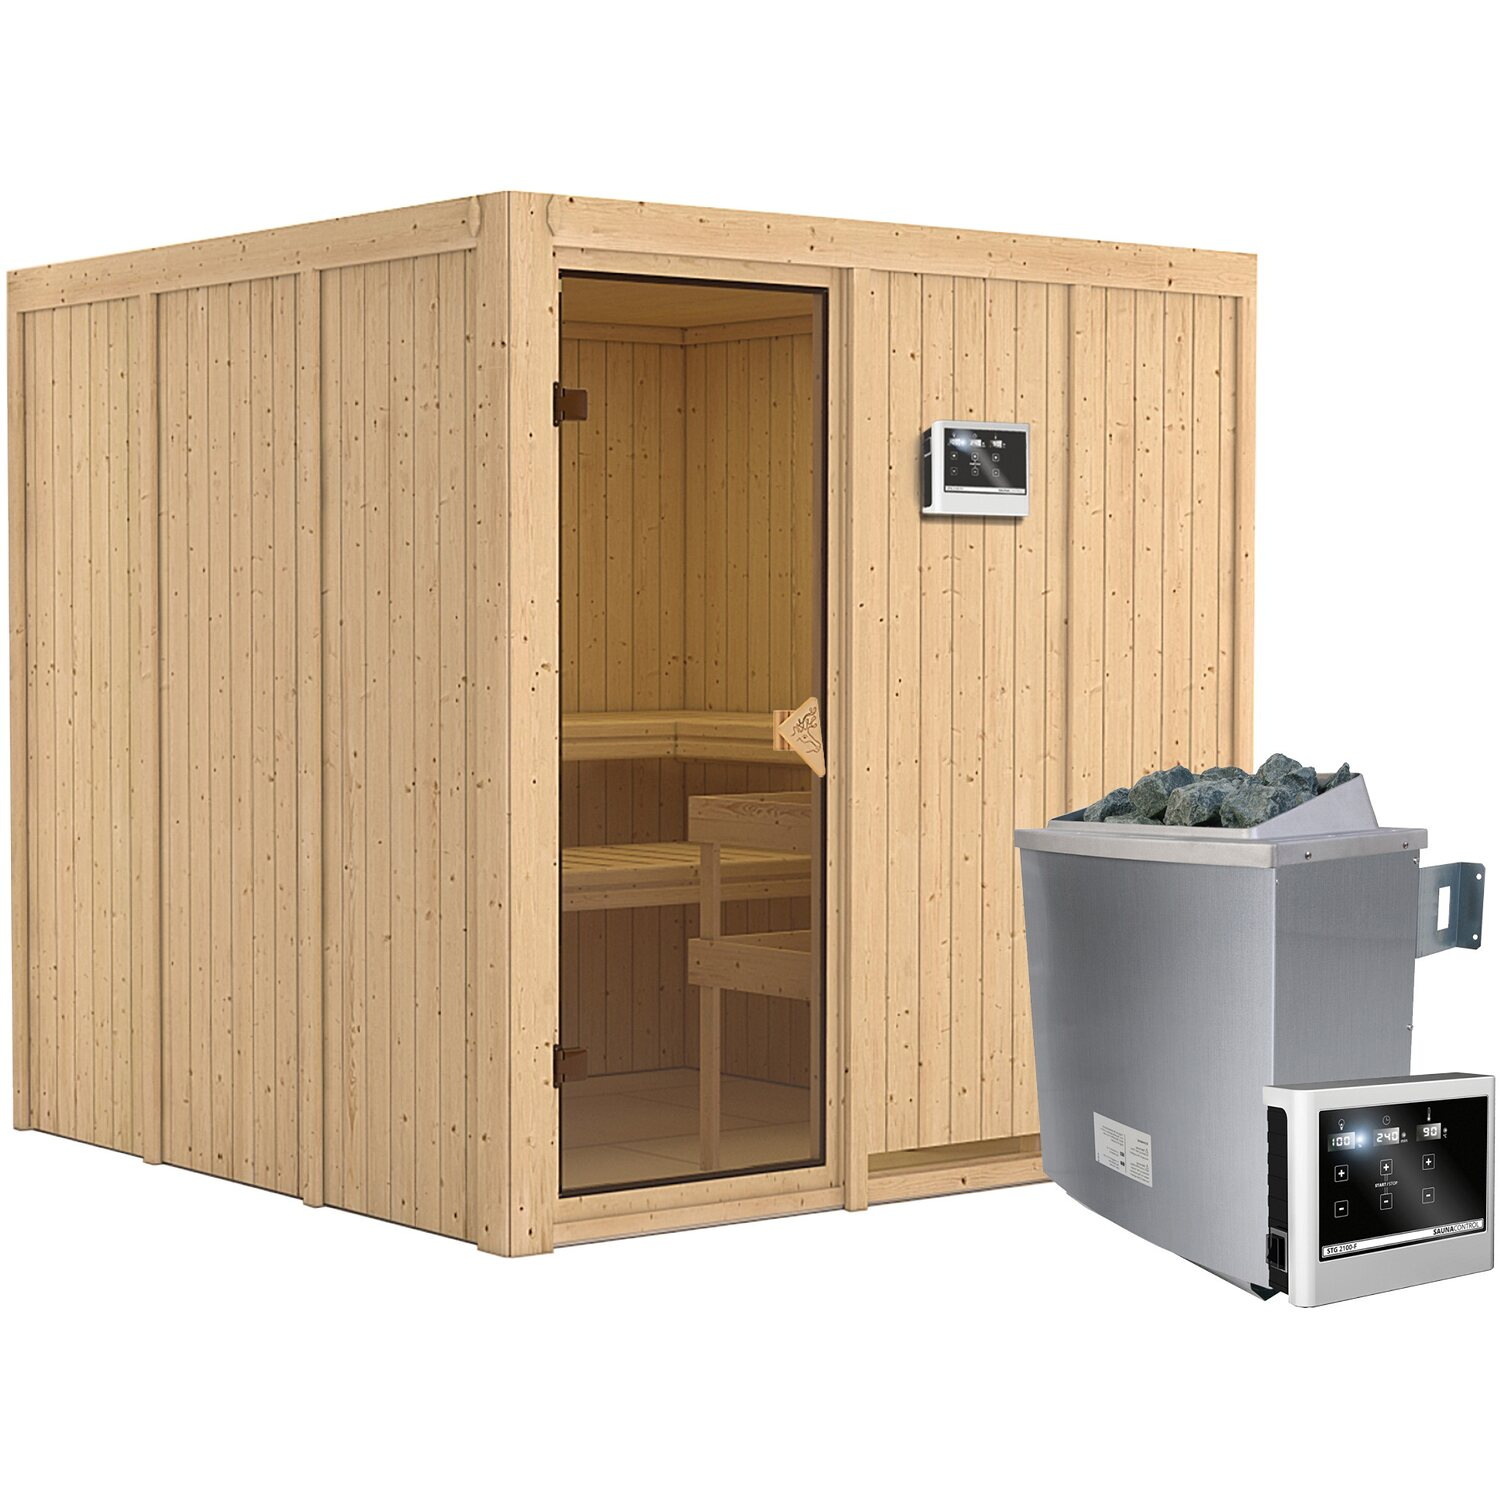 karibu sauna rokko ofen mit exte strg bluetooth. Black Bedroom Furniture Sets. Home Design Ideas